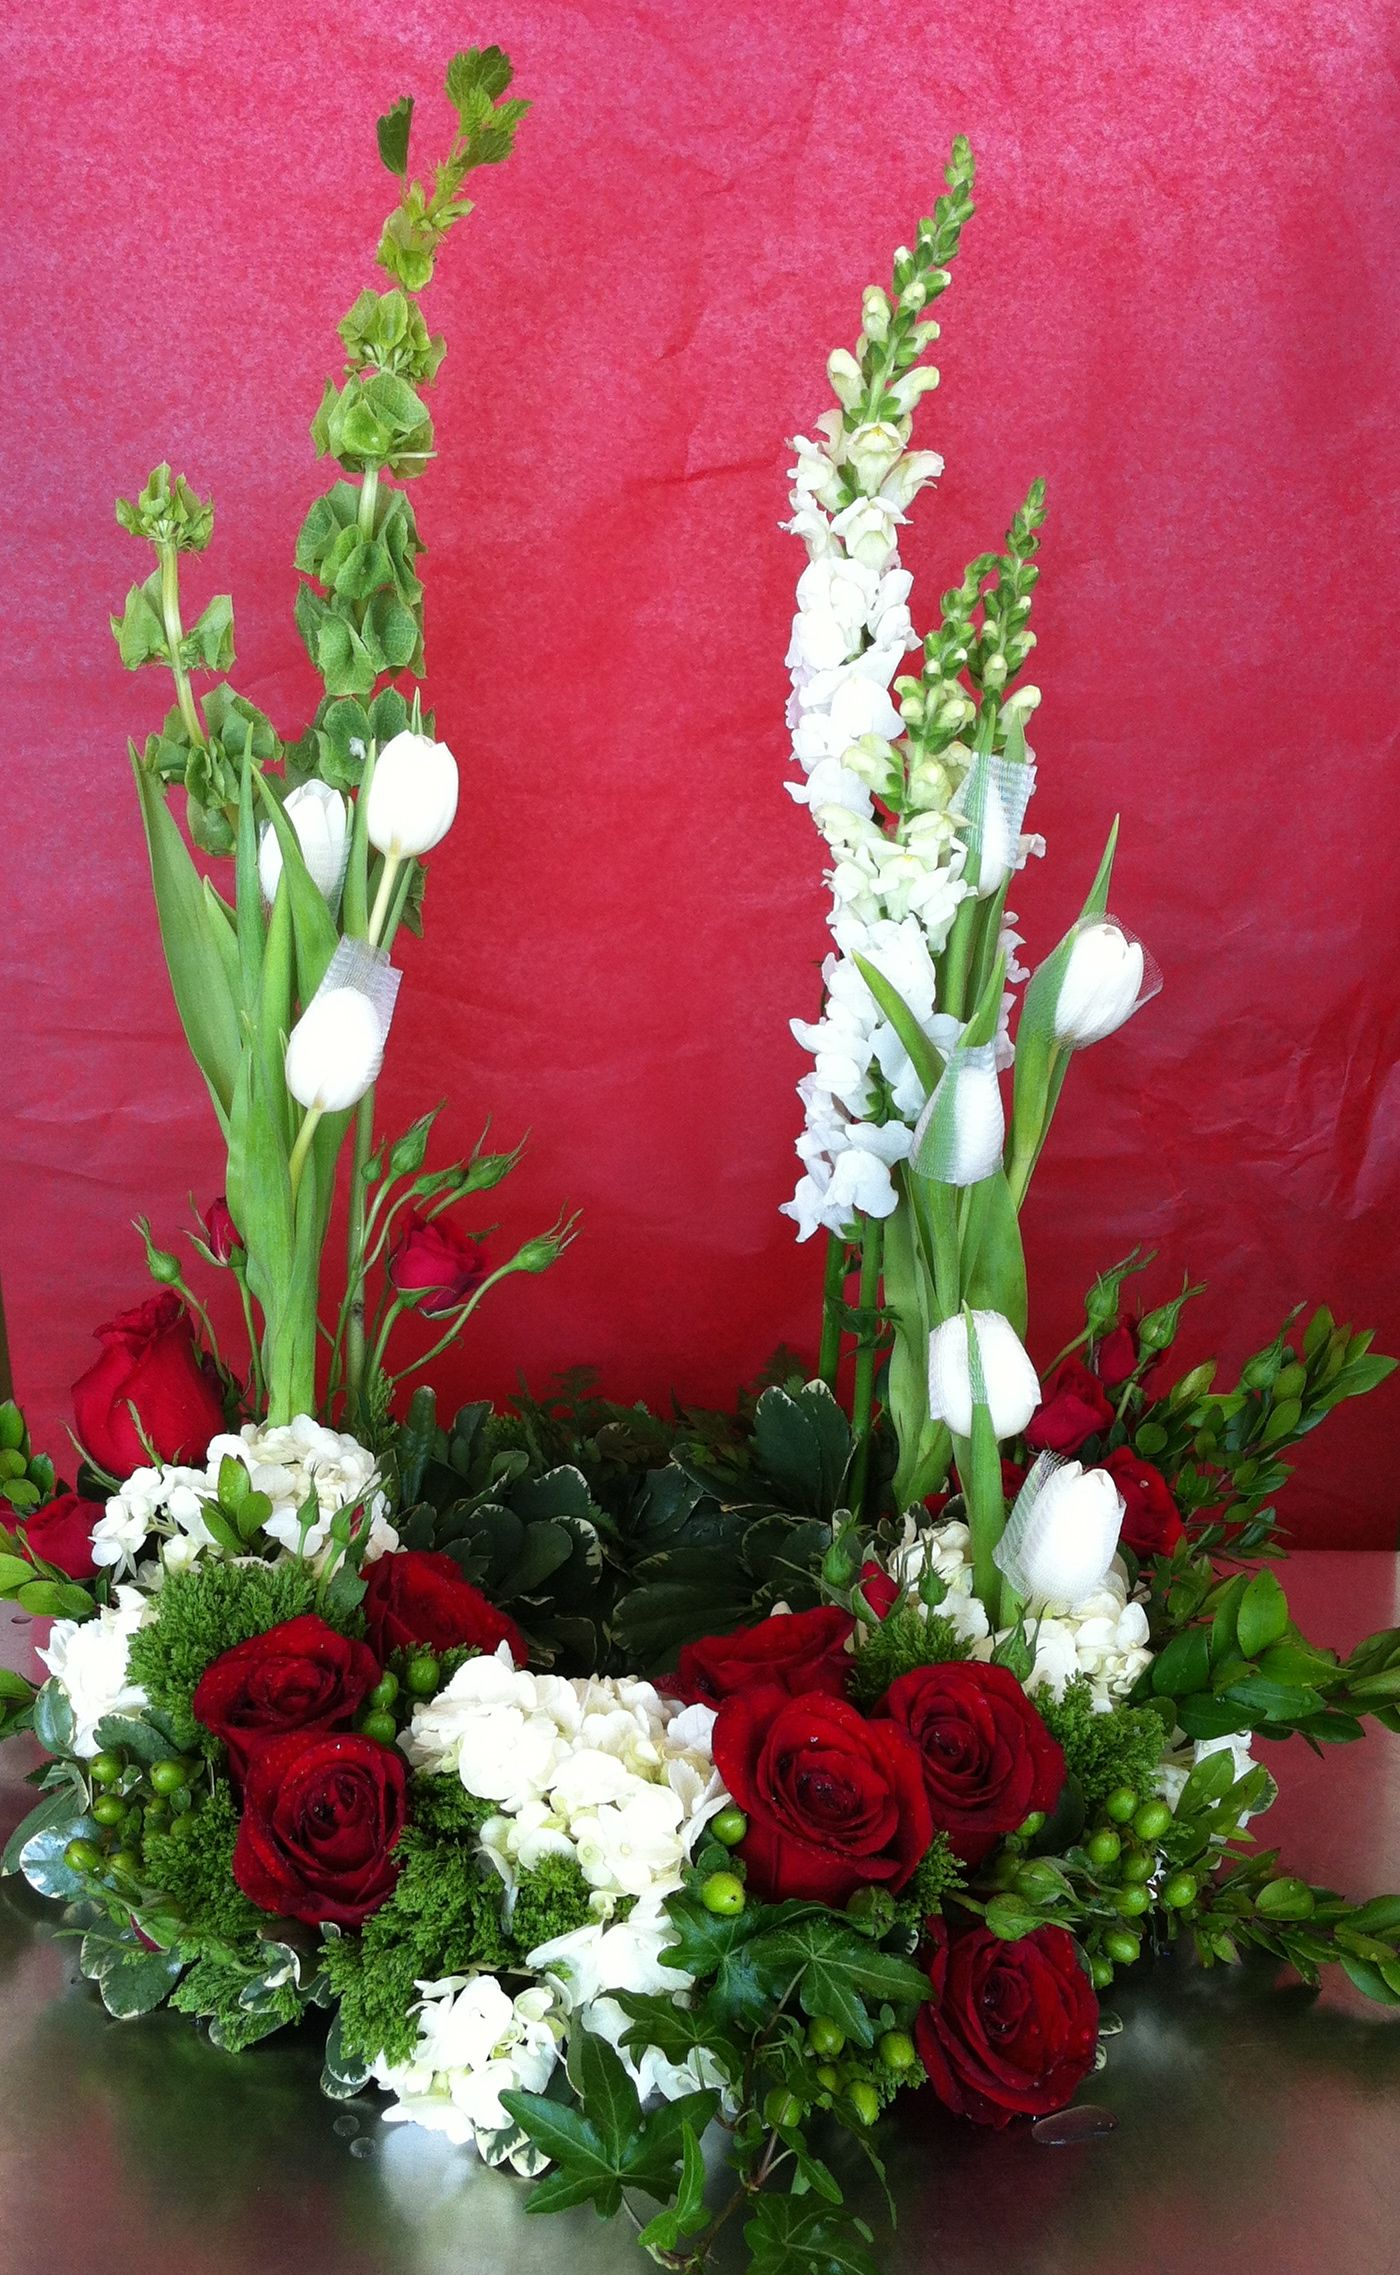 Arrangement Is An Elegant And Sophisticated Way To Surround Their